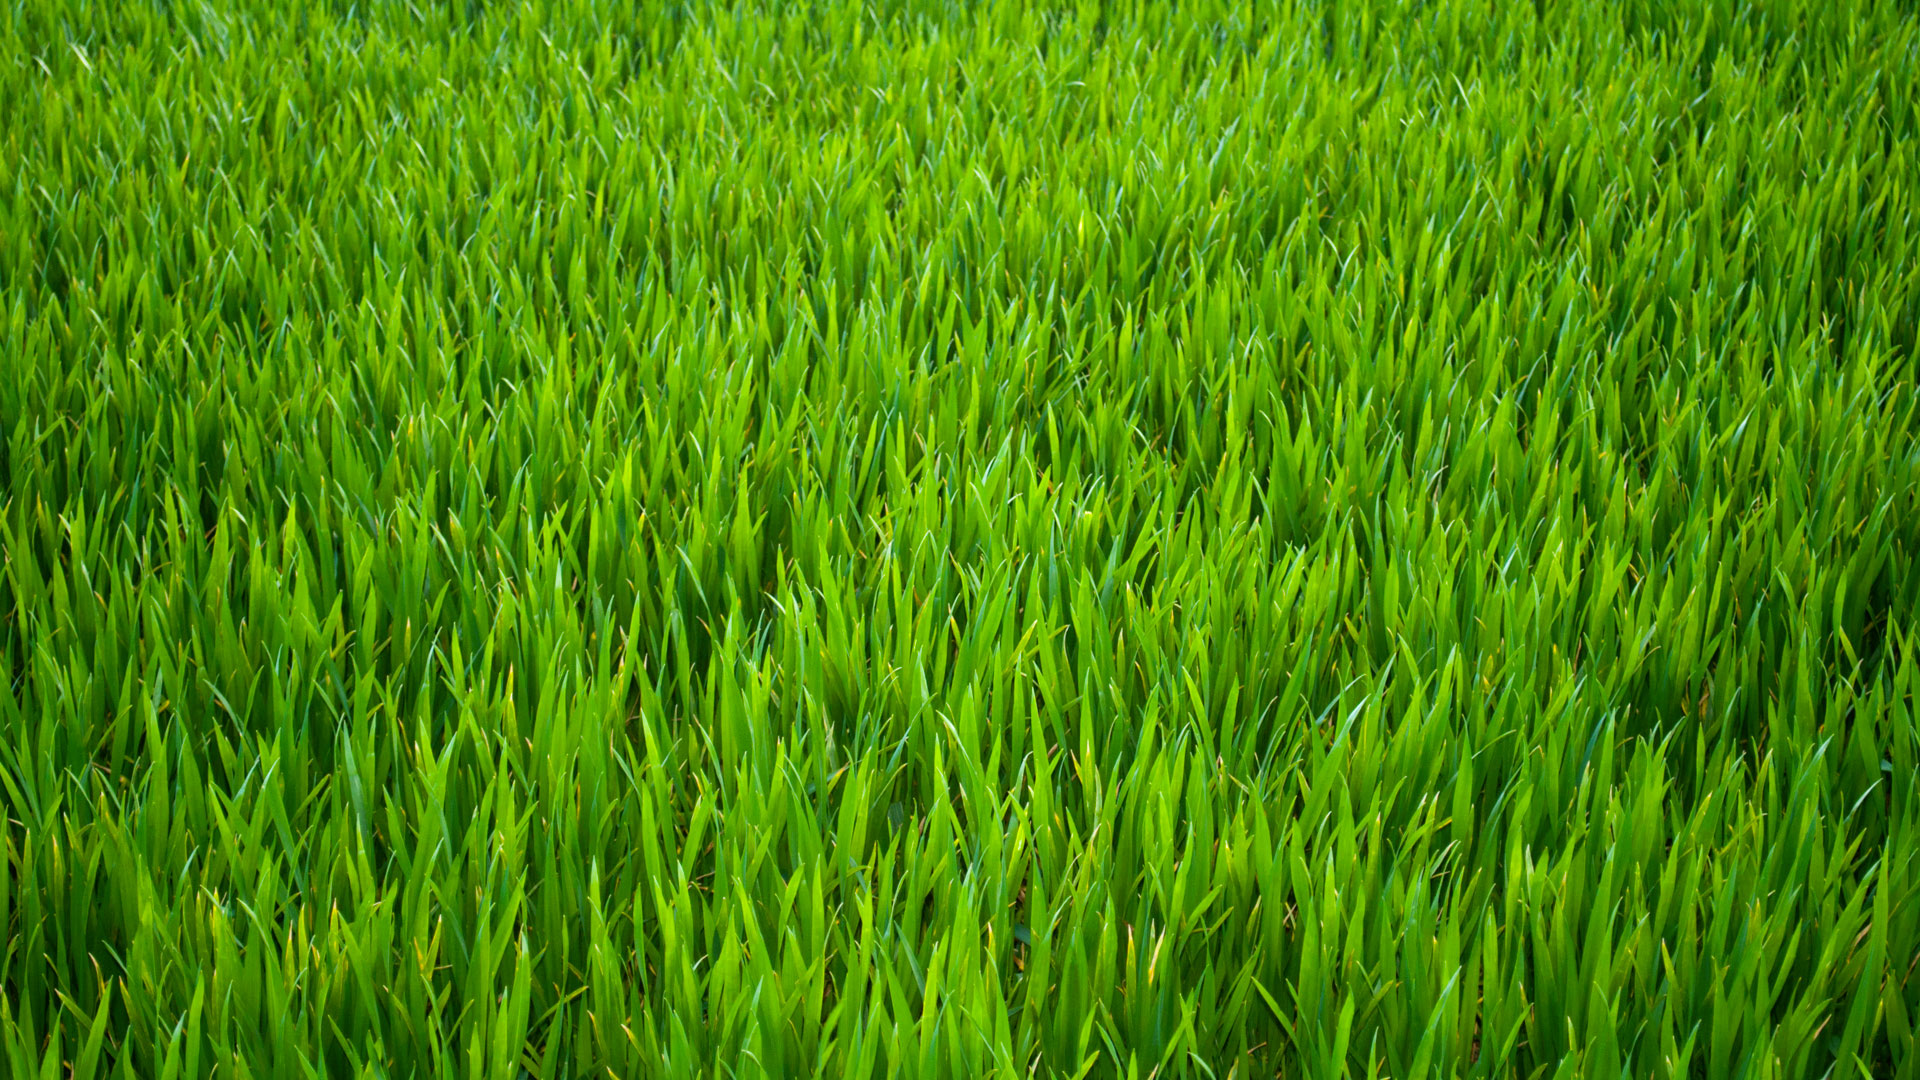 Airdrain Agronomic Drainage Natural Grass Installations